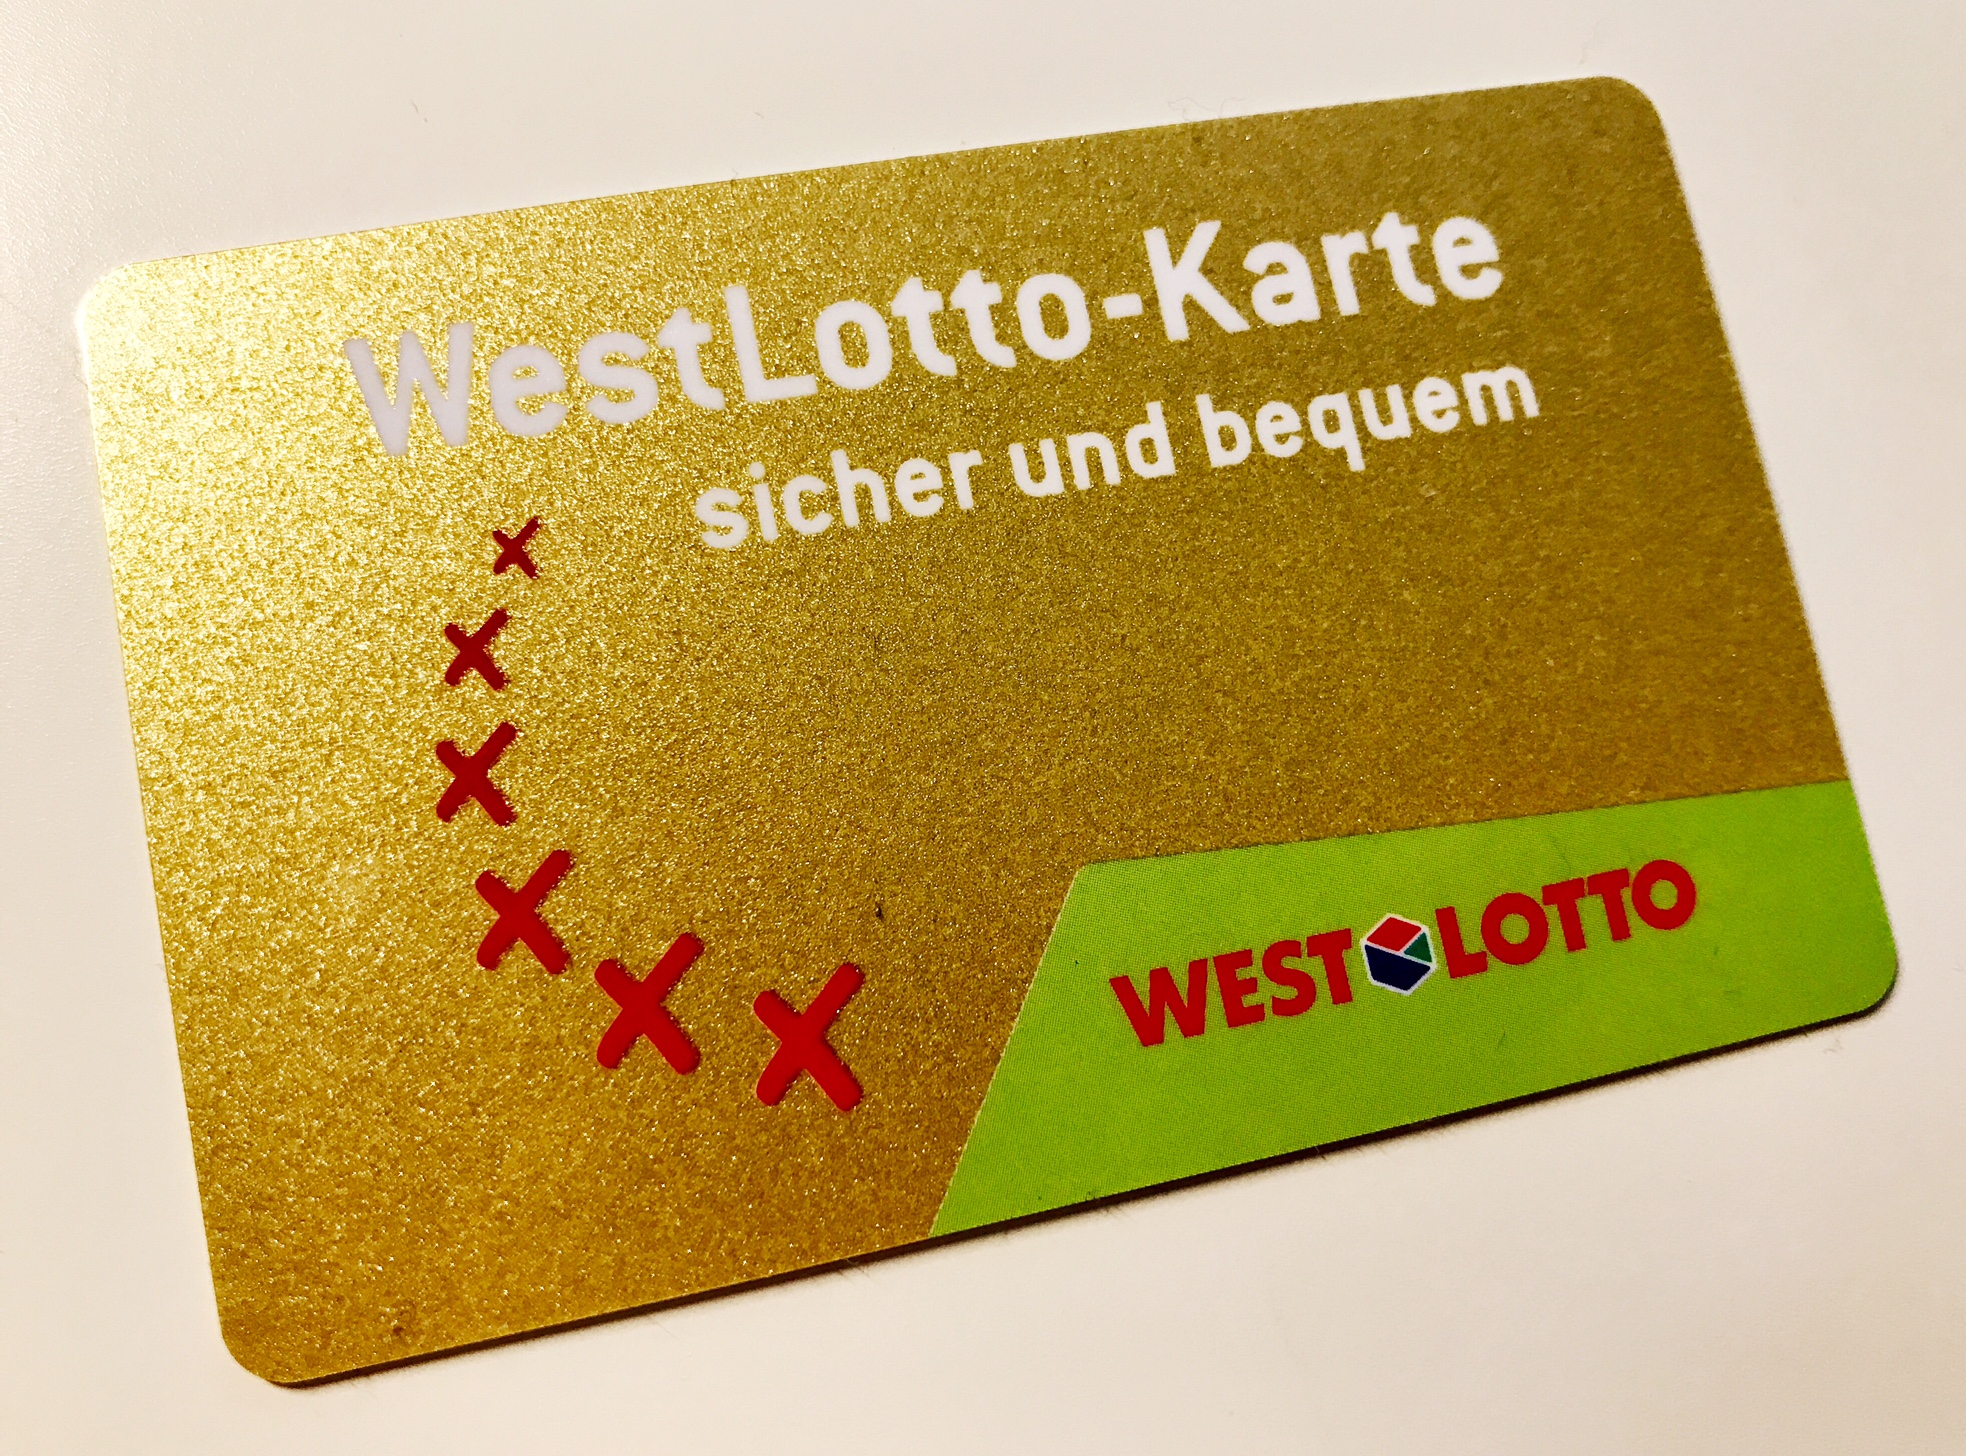 Lotto West